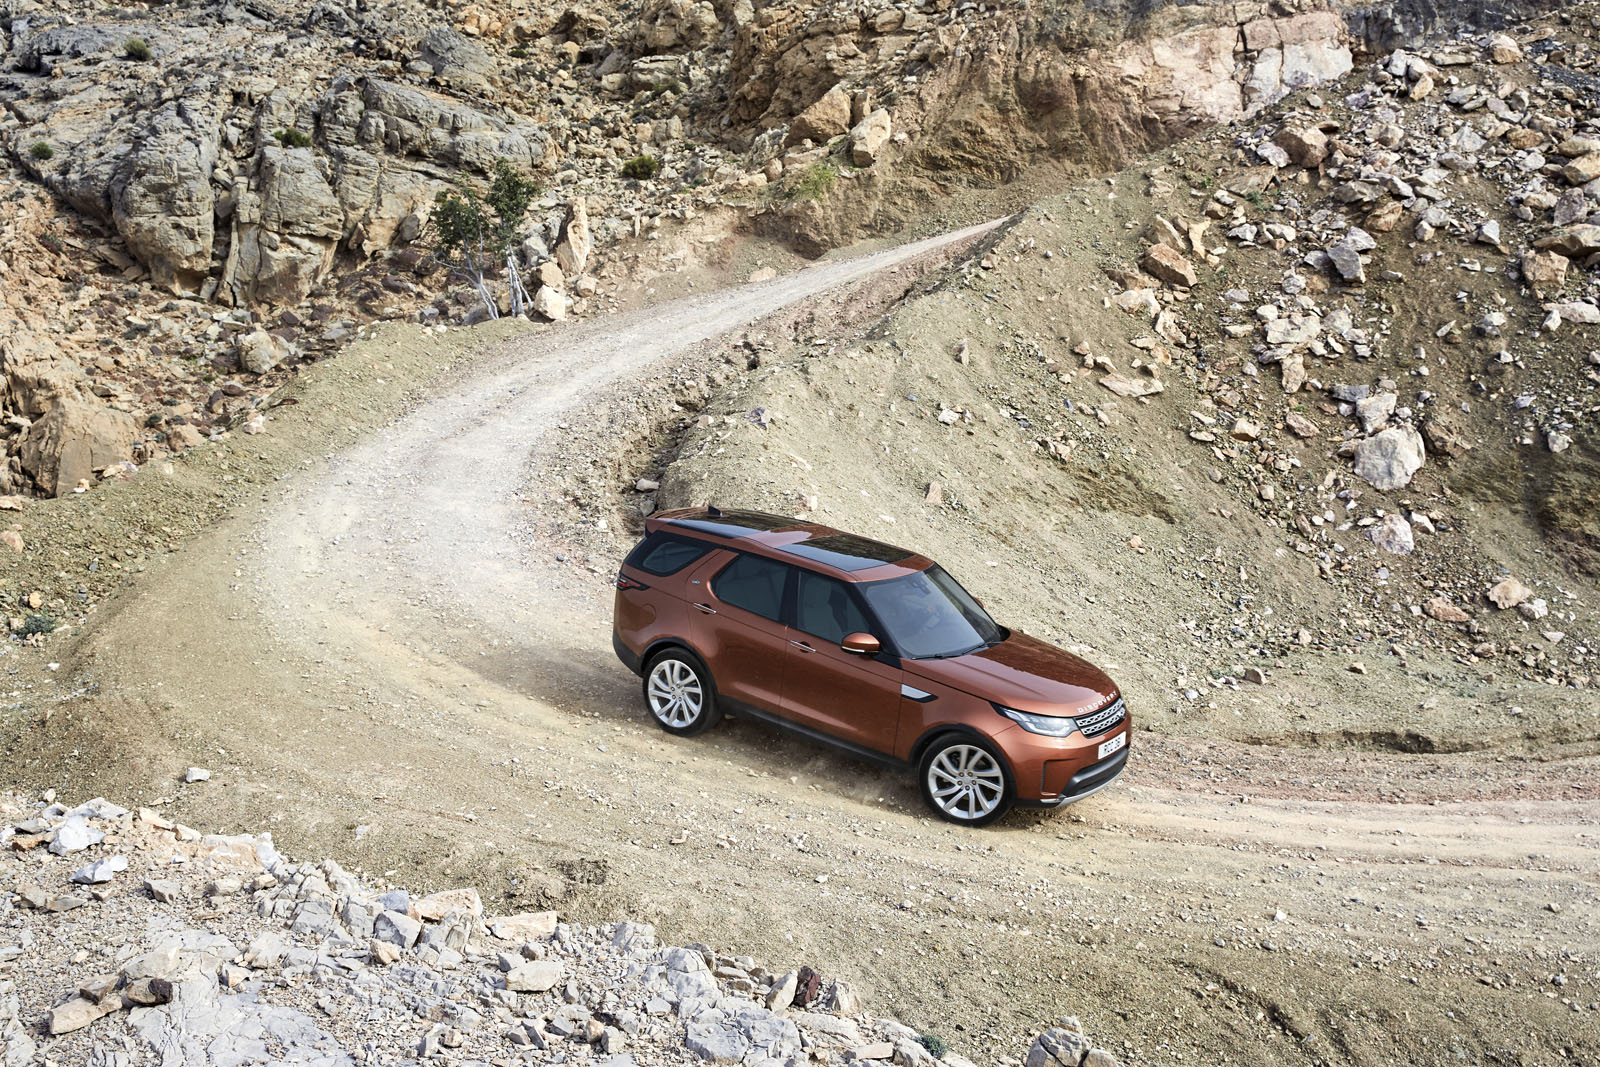 2018-Land-Rover-Discovery-01